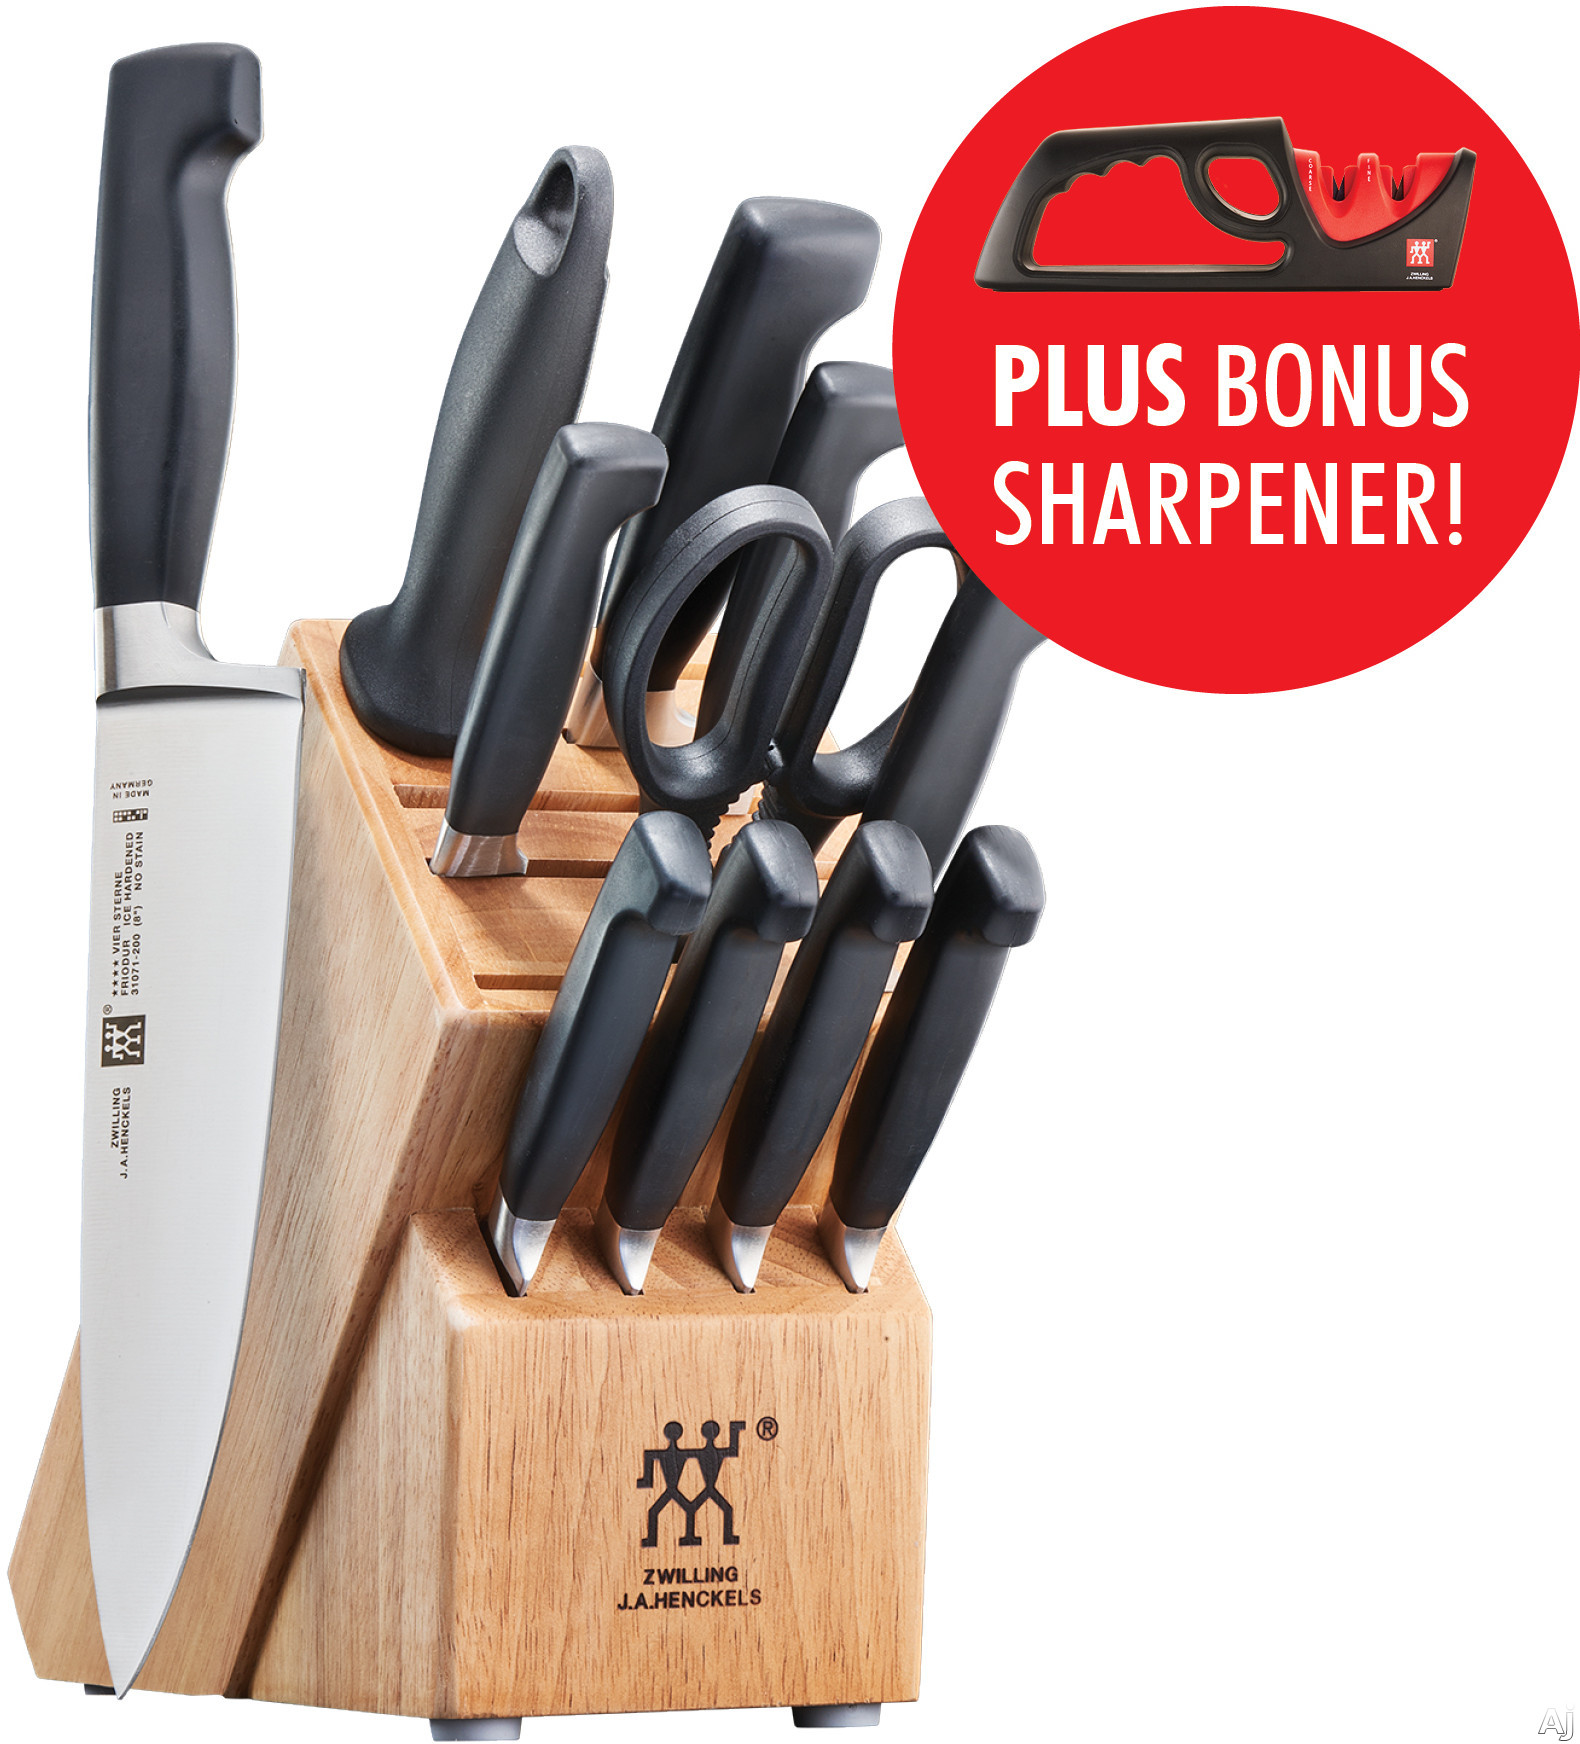 Zwilling J.A. Henckels 35740013 Four Star 13-Piece Knife Block Set with Full Bolsters, High-Carbon Stainless Steel, Ice-Hardened Blades, Hand Wash Only and Manufactured in Germany